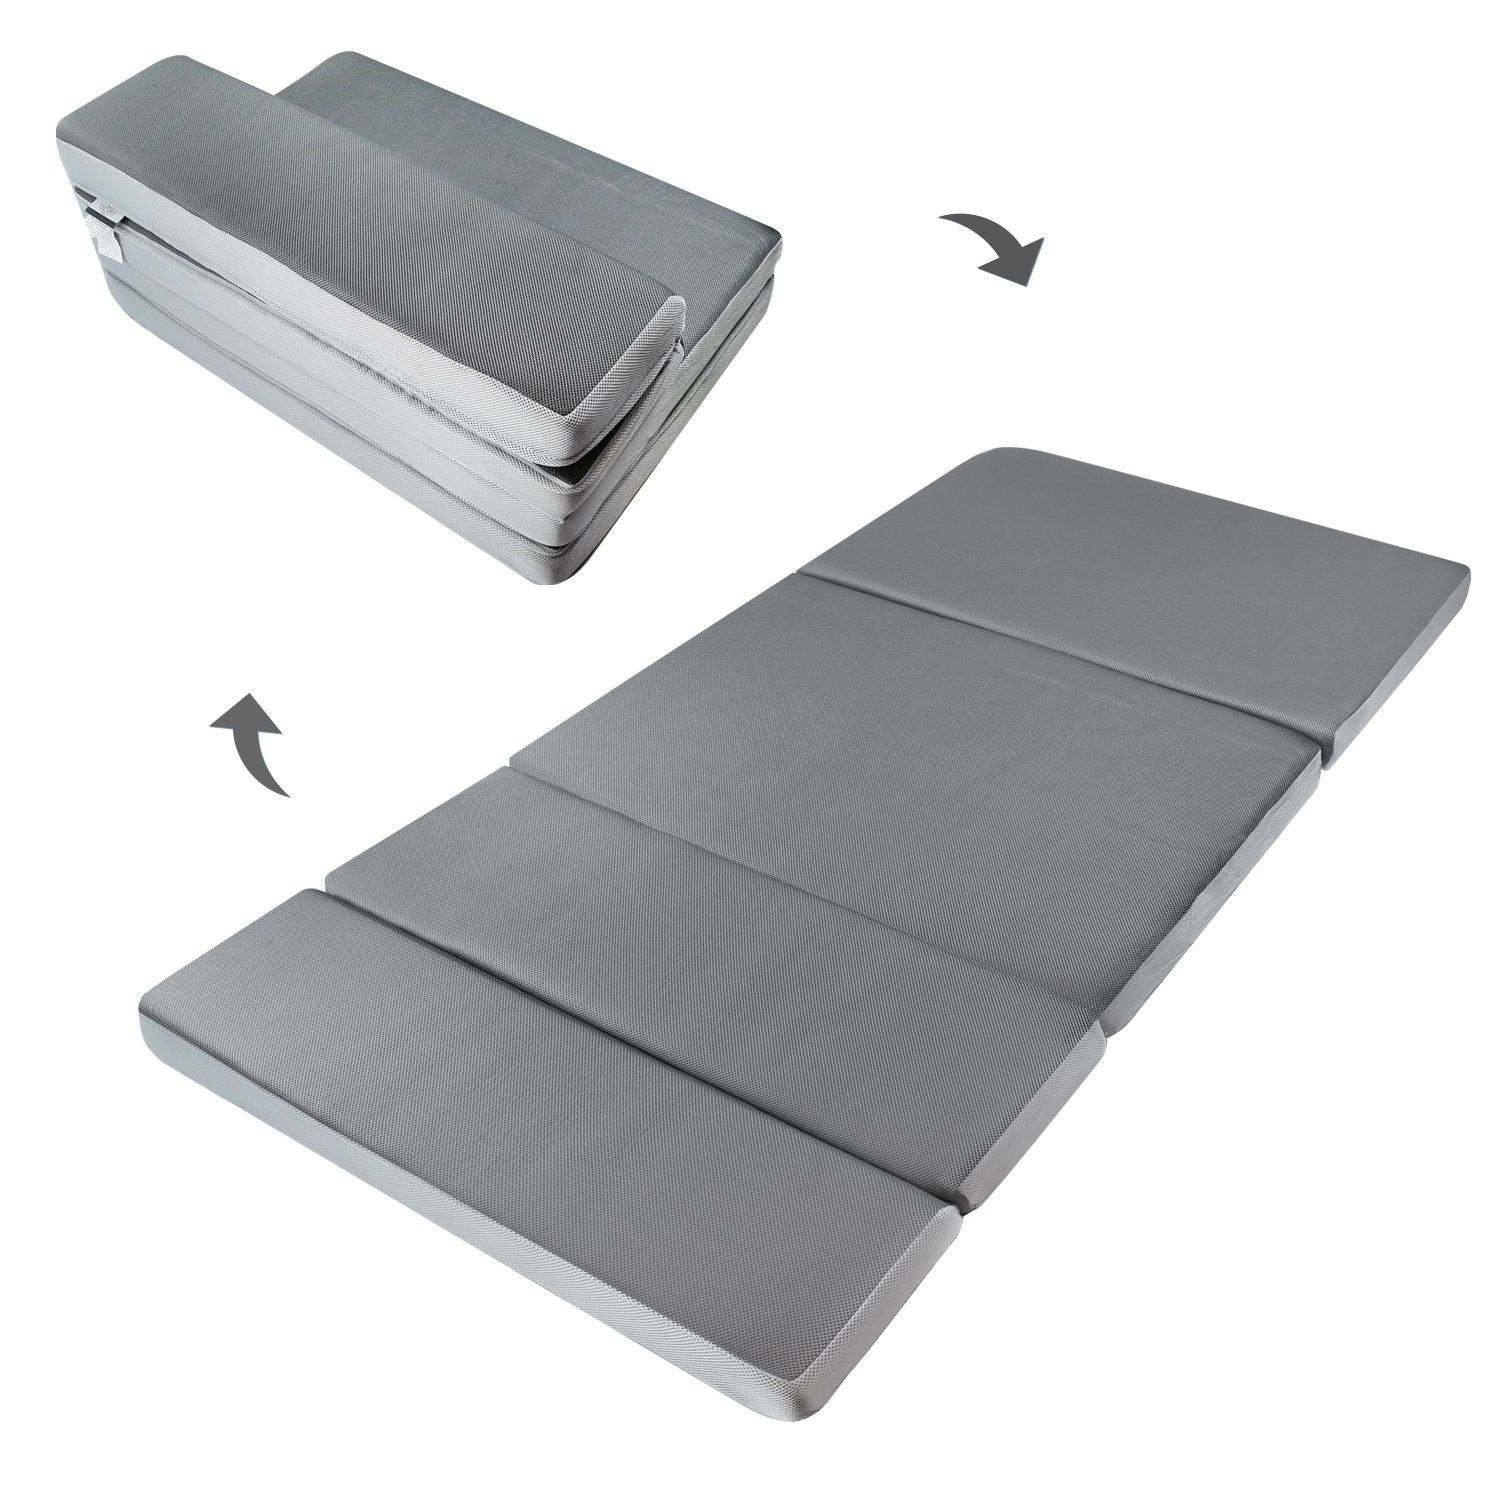 Lucid 4 Folding Mattress and Camping Sofa This is a very